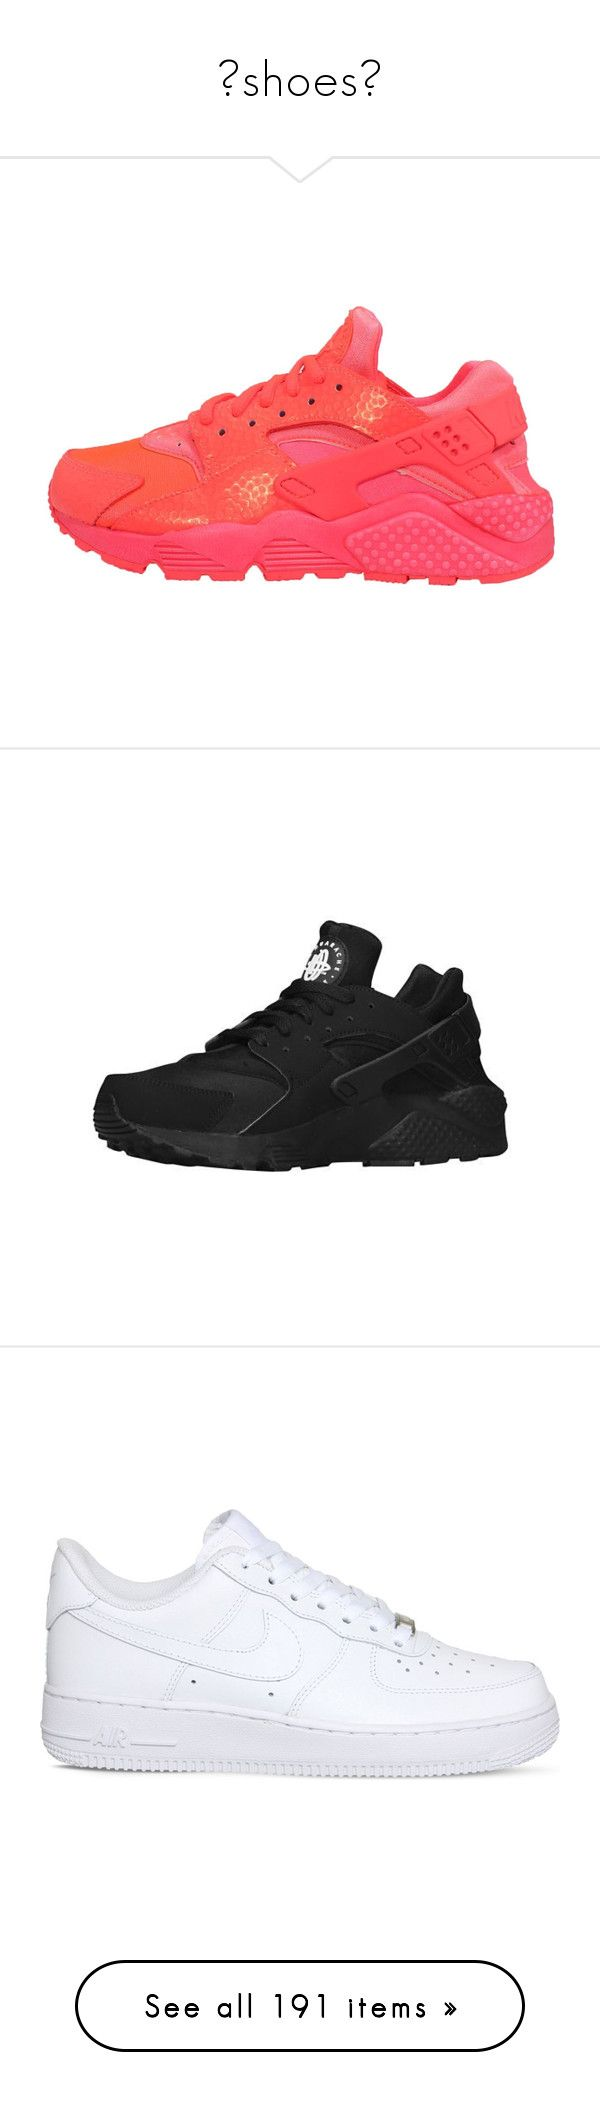 """""""🖤shoes🖤"""" by mazzyfaye ❤ liked on Polyvore featuring men's fashion, men's shoes, men's sneakers, shoes, sneakers, momma shoes, mens creeper shoes, mens velvet sneakers, mens creeper sneakers and mens lace up shoes"""